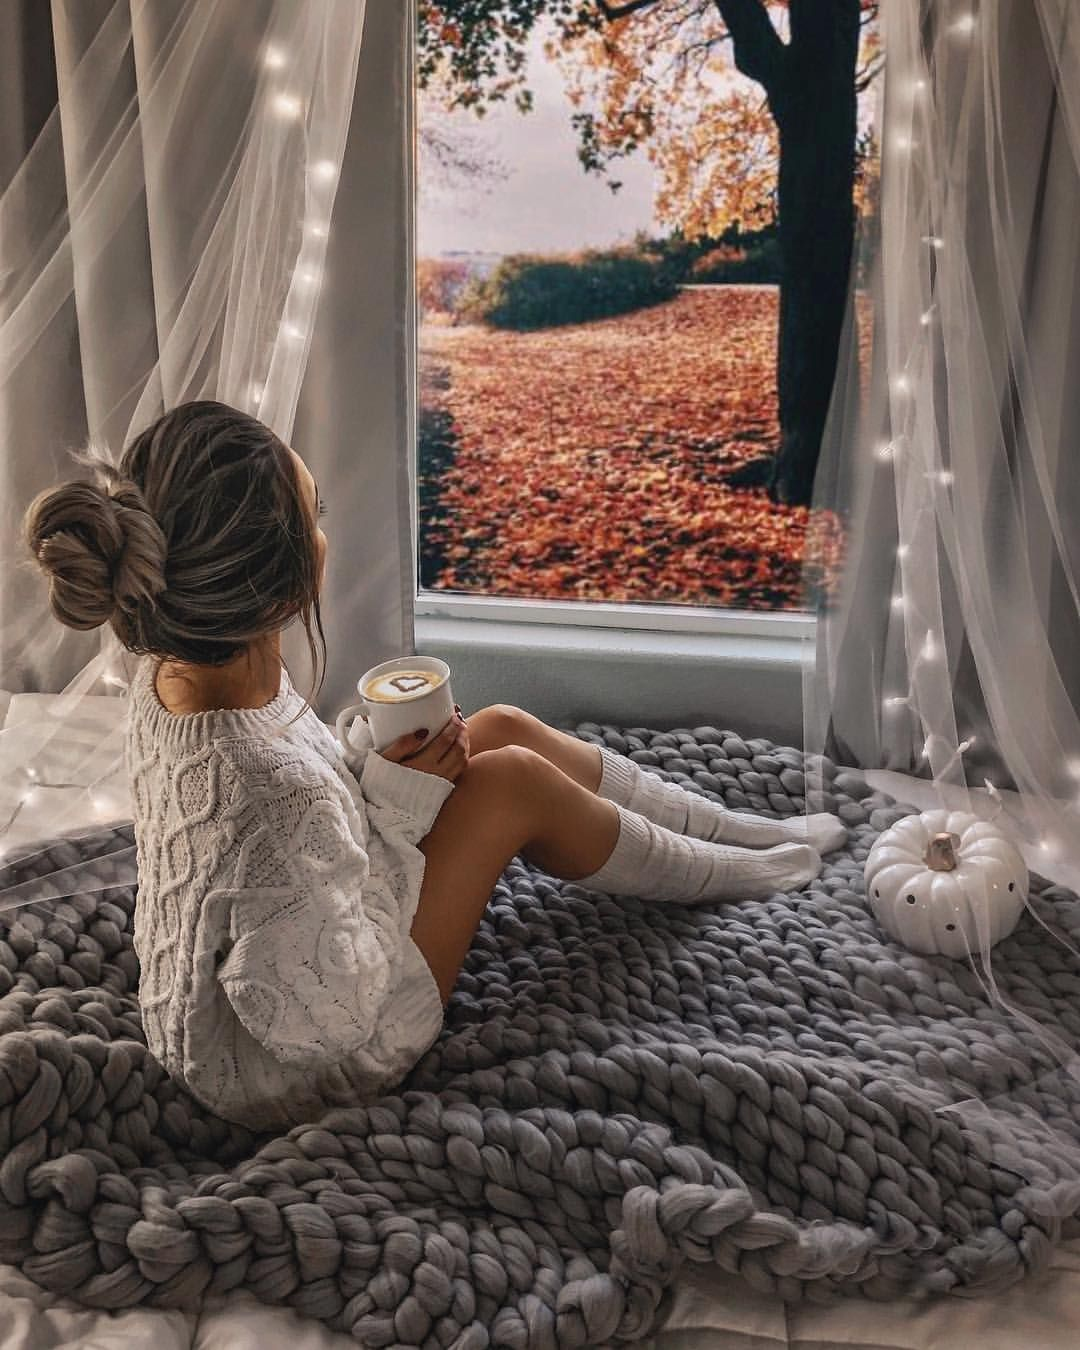 """Photo of evangelina on Instagram: """"☁️🍂🍁 happy sundayyy • Sitting on the coziest blanket from @comfywool 🧡 giveaway coming soon!"""""""